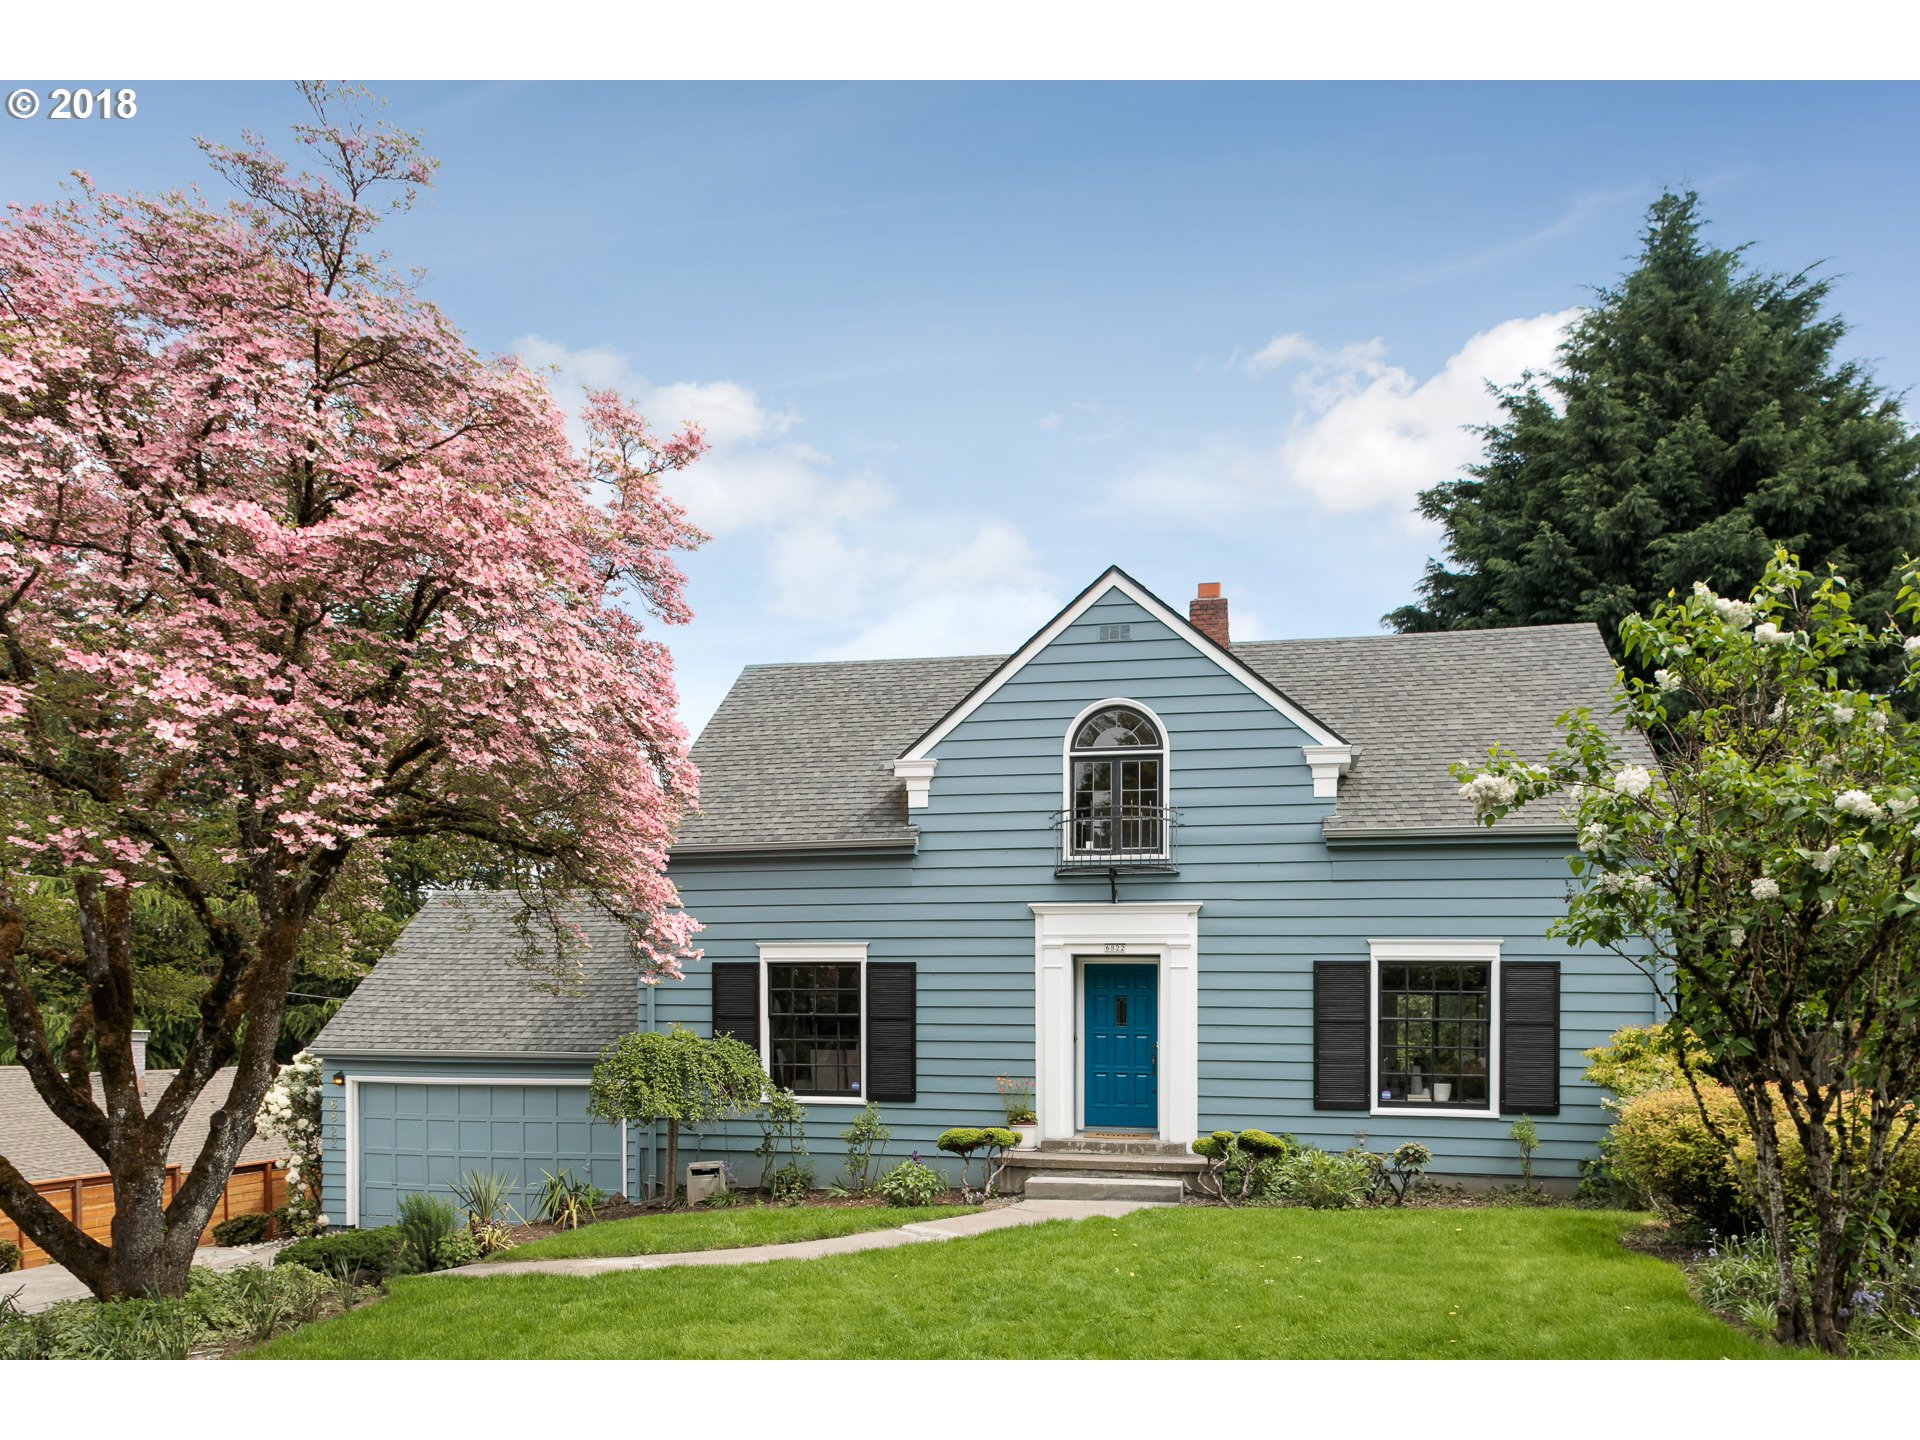 3343 sq. ft 4 bedrooms 2 bathrooms  House For Sale,Portland, OR